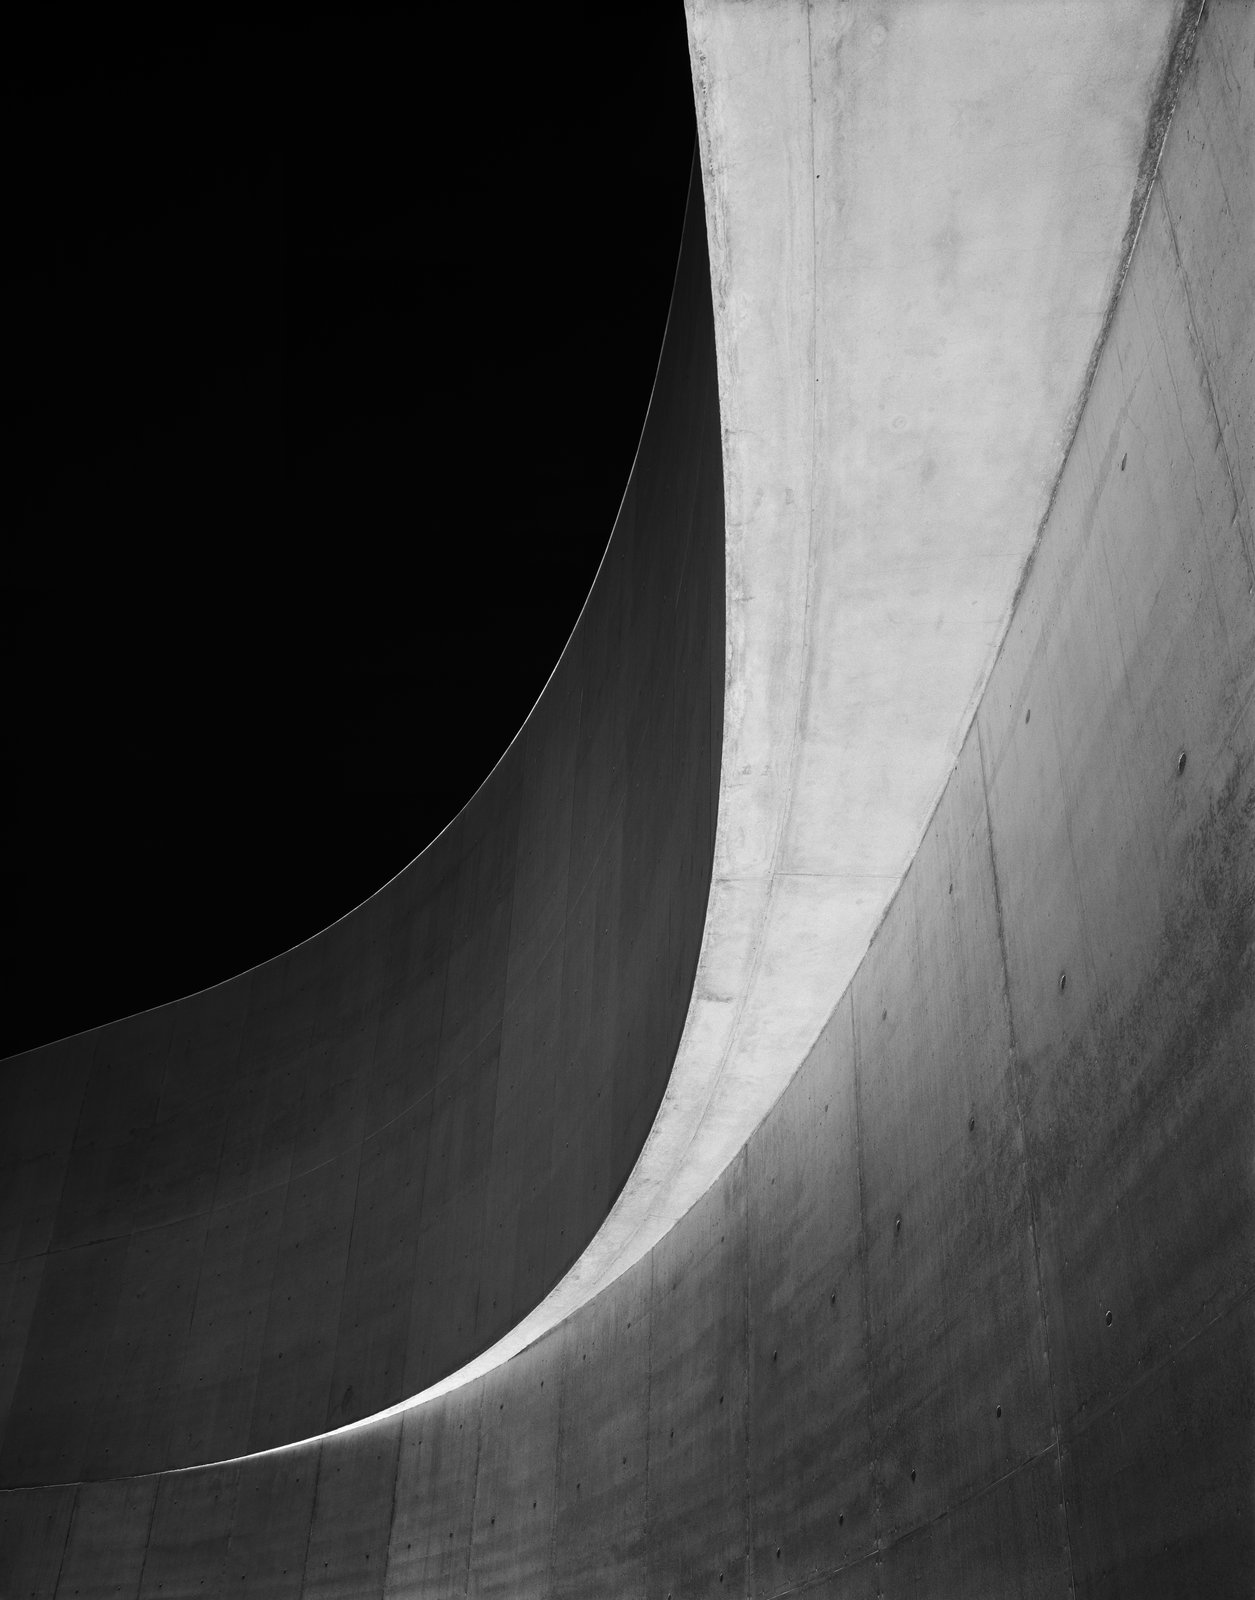 Maxxi Diptychon, Zaha Hadid, 2009, silver gelatin print.  Photo 7 of 8 in A New Los Angeles Exhibition Celebrates the Architectural Photography of Hélène Binet